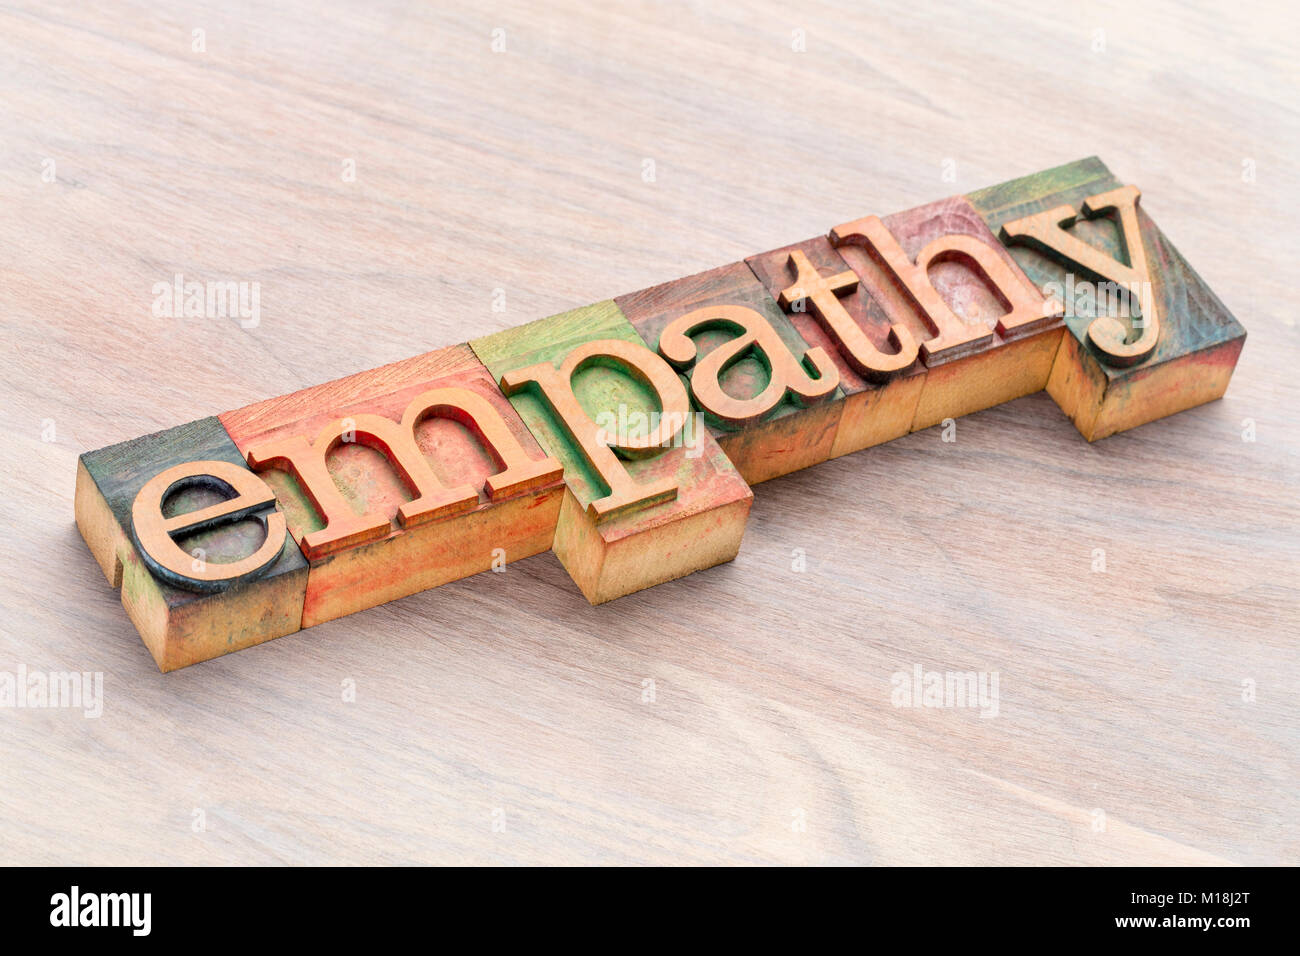 empathy word abstract in letterpress wood type blocks stained by color inks - Stock Image